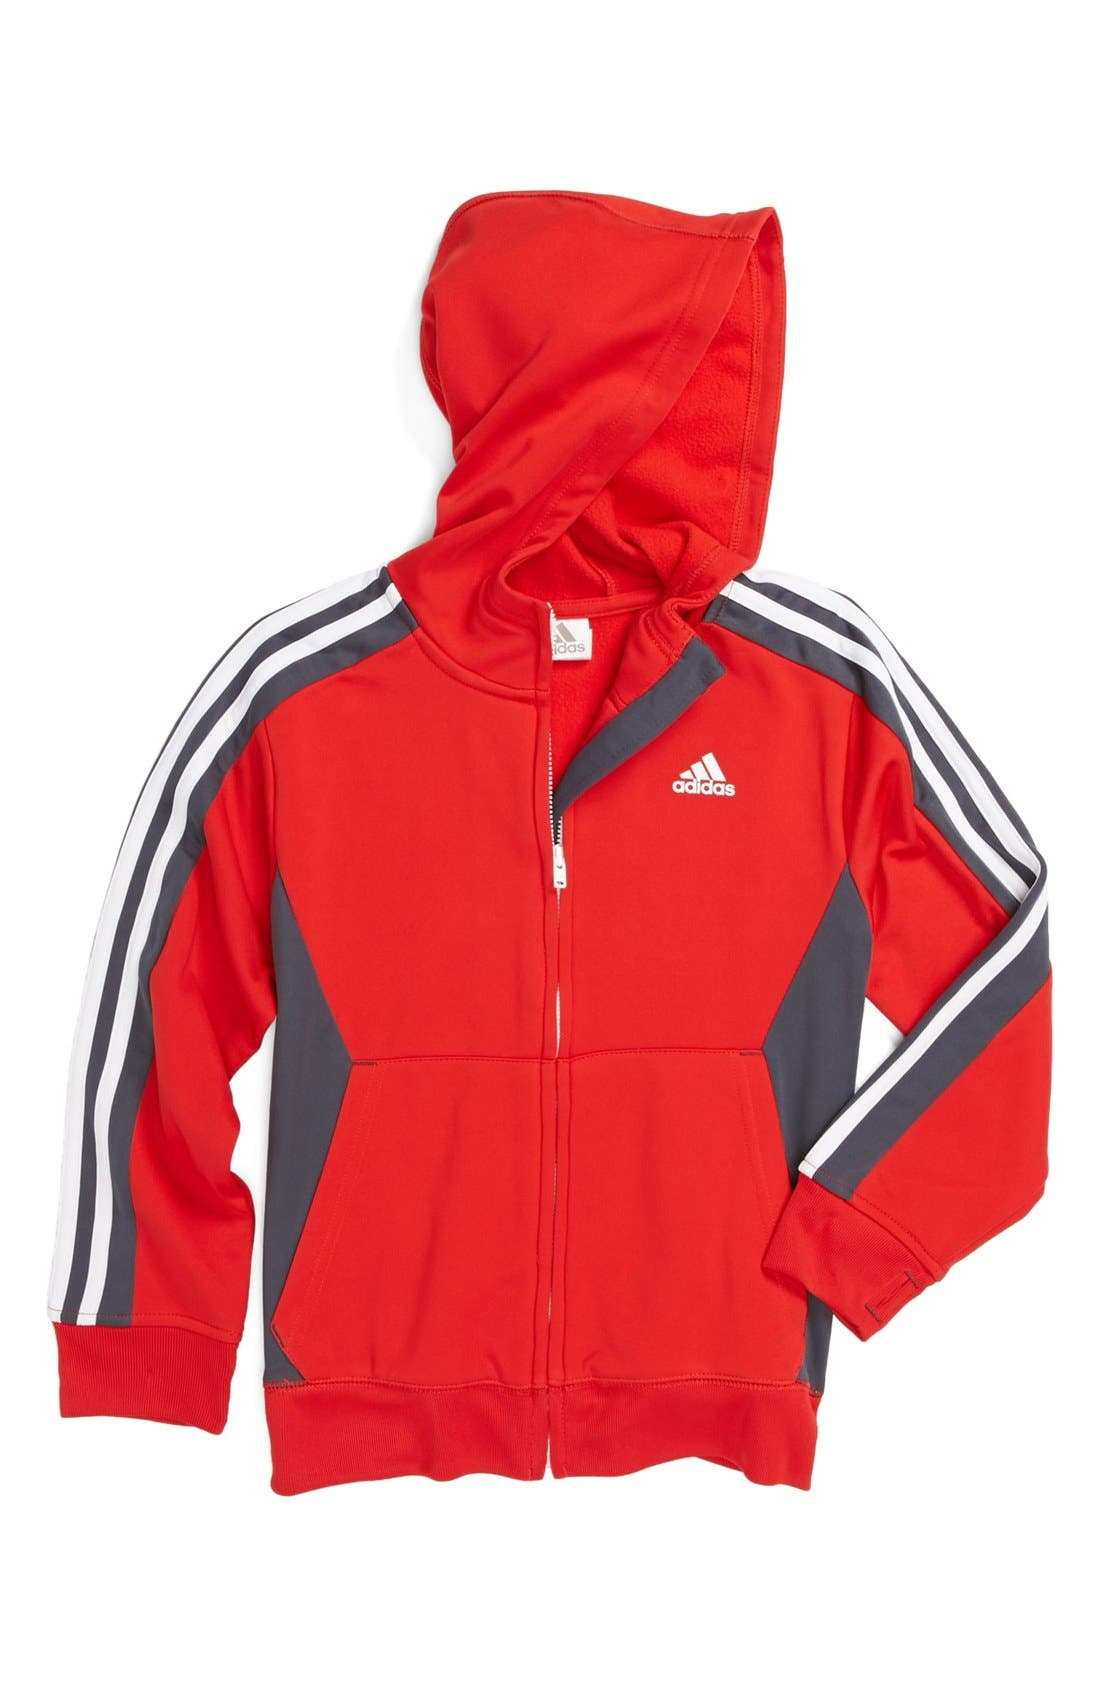 Main Image - adidas 'Prime' Jacket (Little Boys)